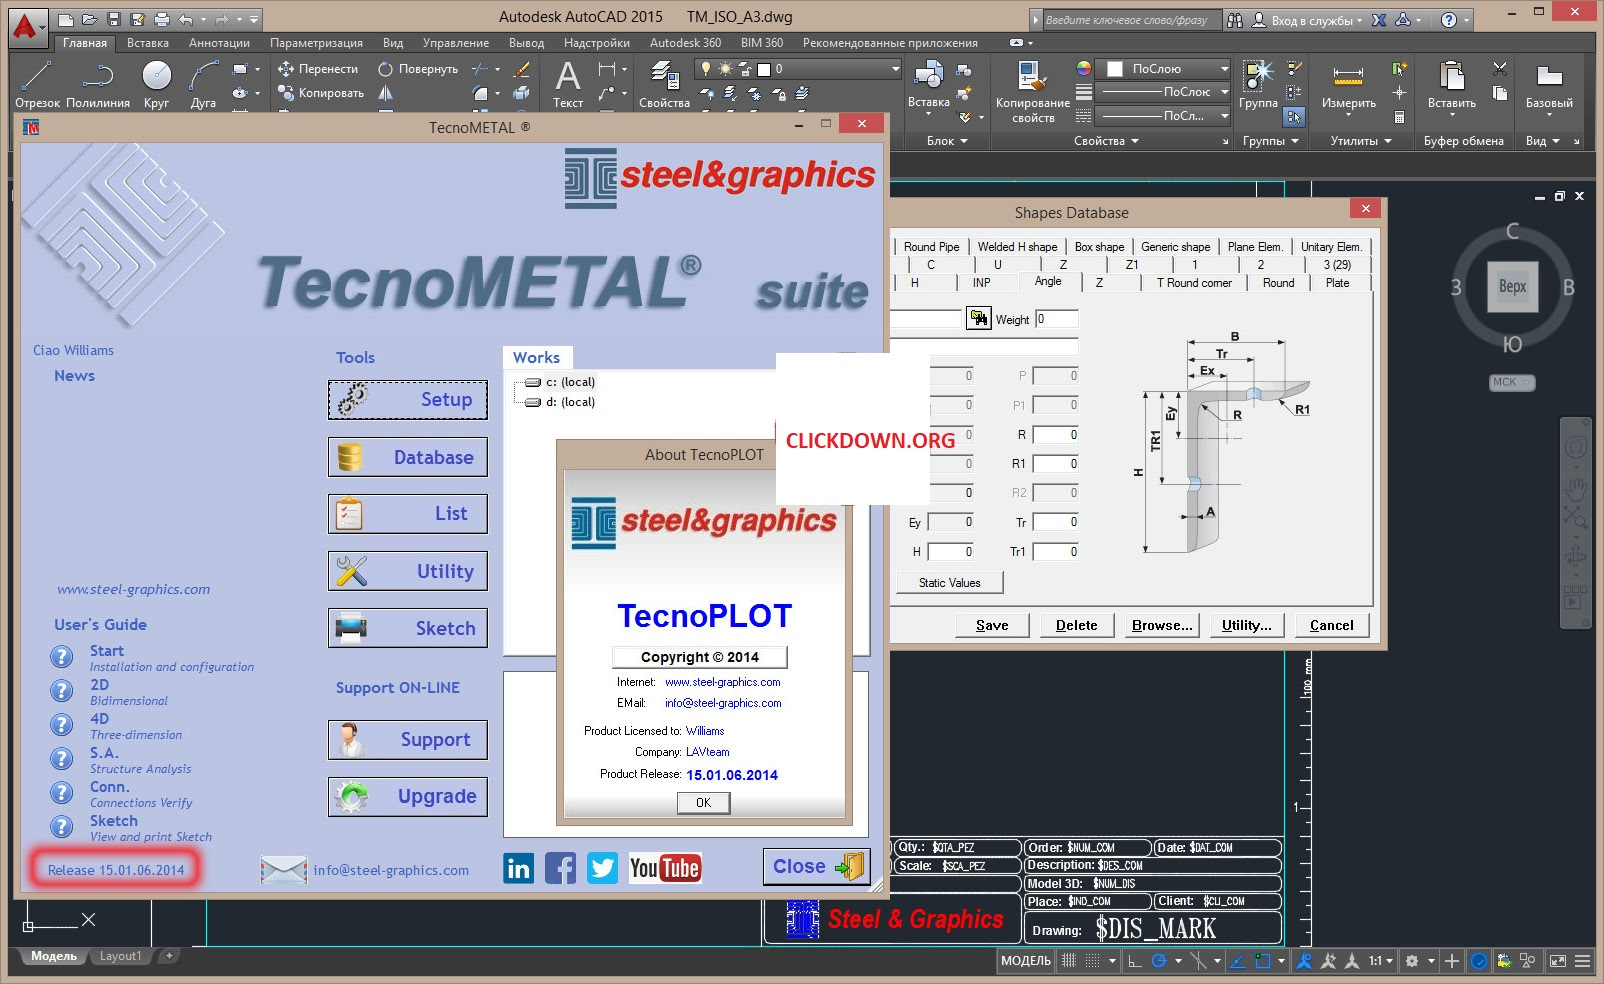 Working with Steel & Graphics TecnoMETAL BIM Suite 2015 full